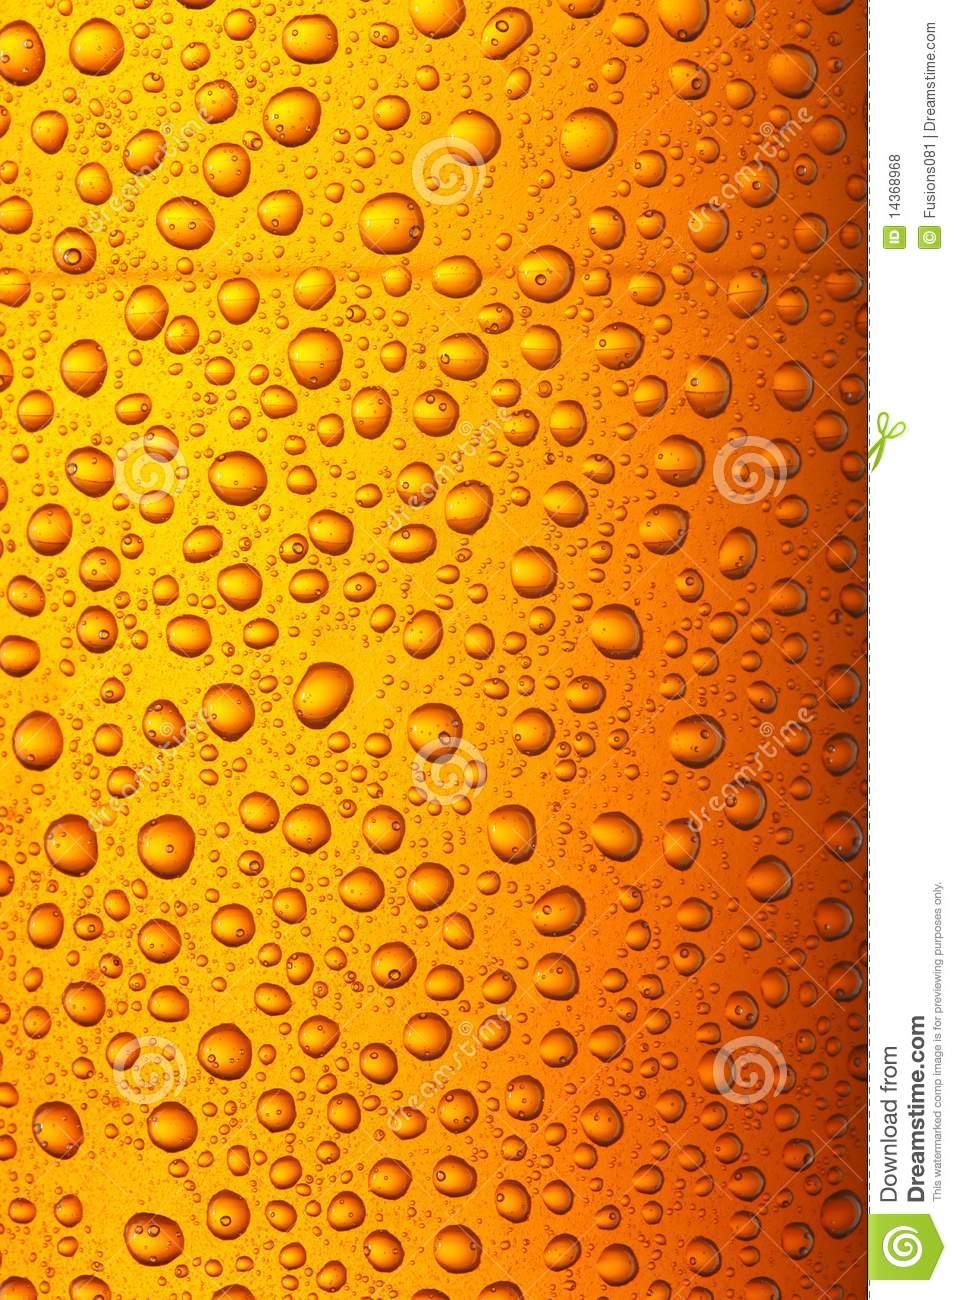 Falling Into Water Wallpaper Orange Yellow Beer Droplets Royalty Free Stock Photos